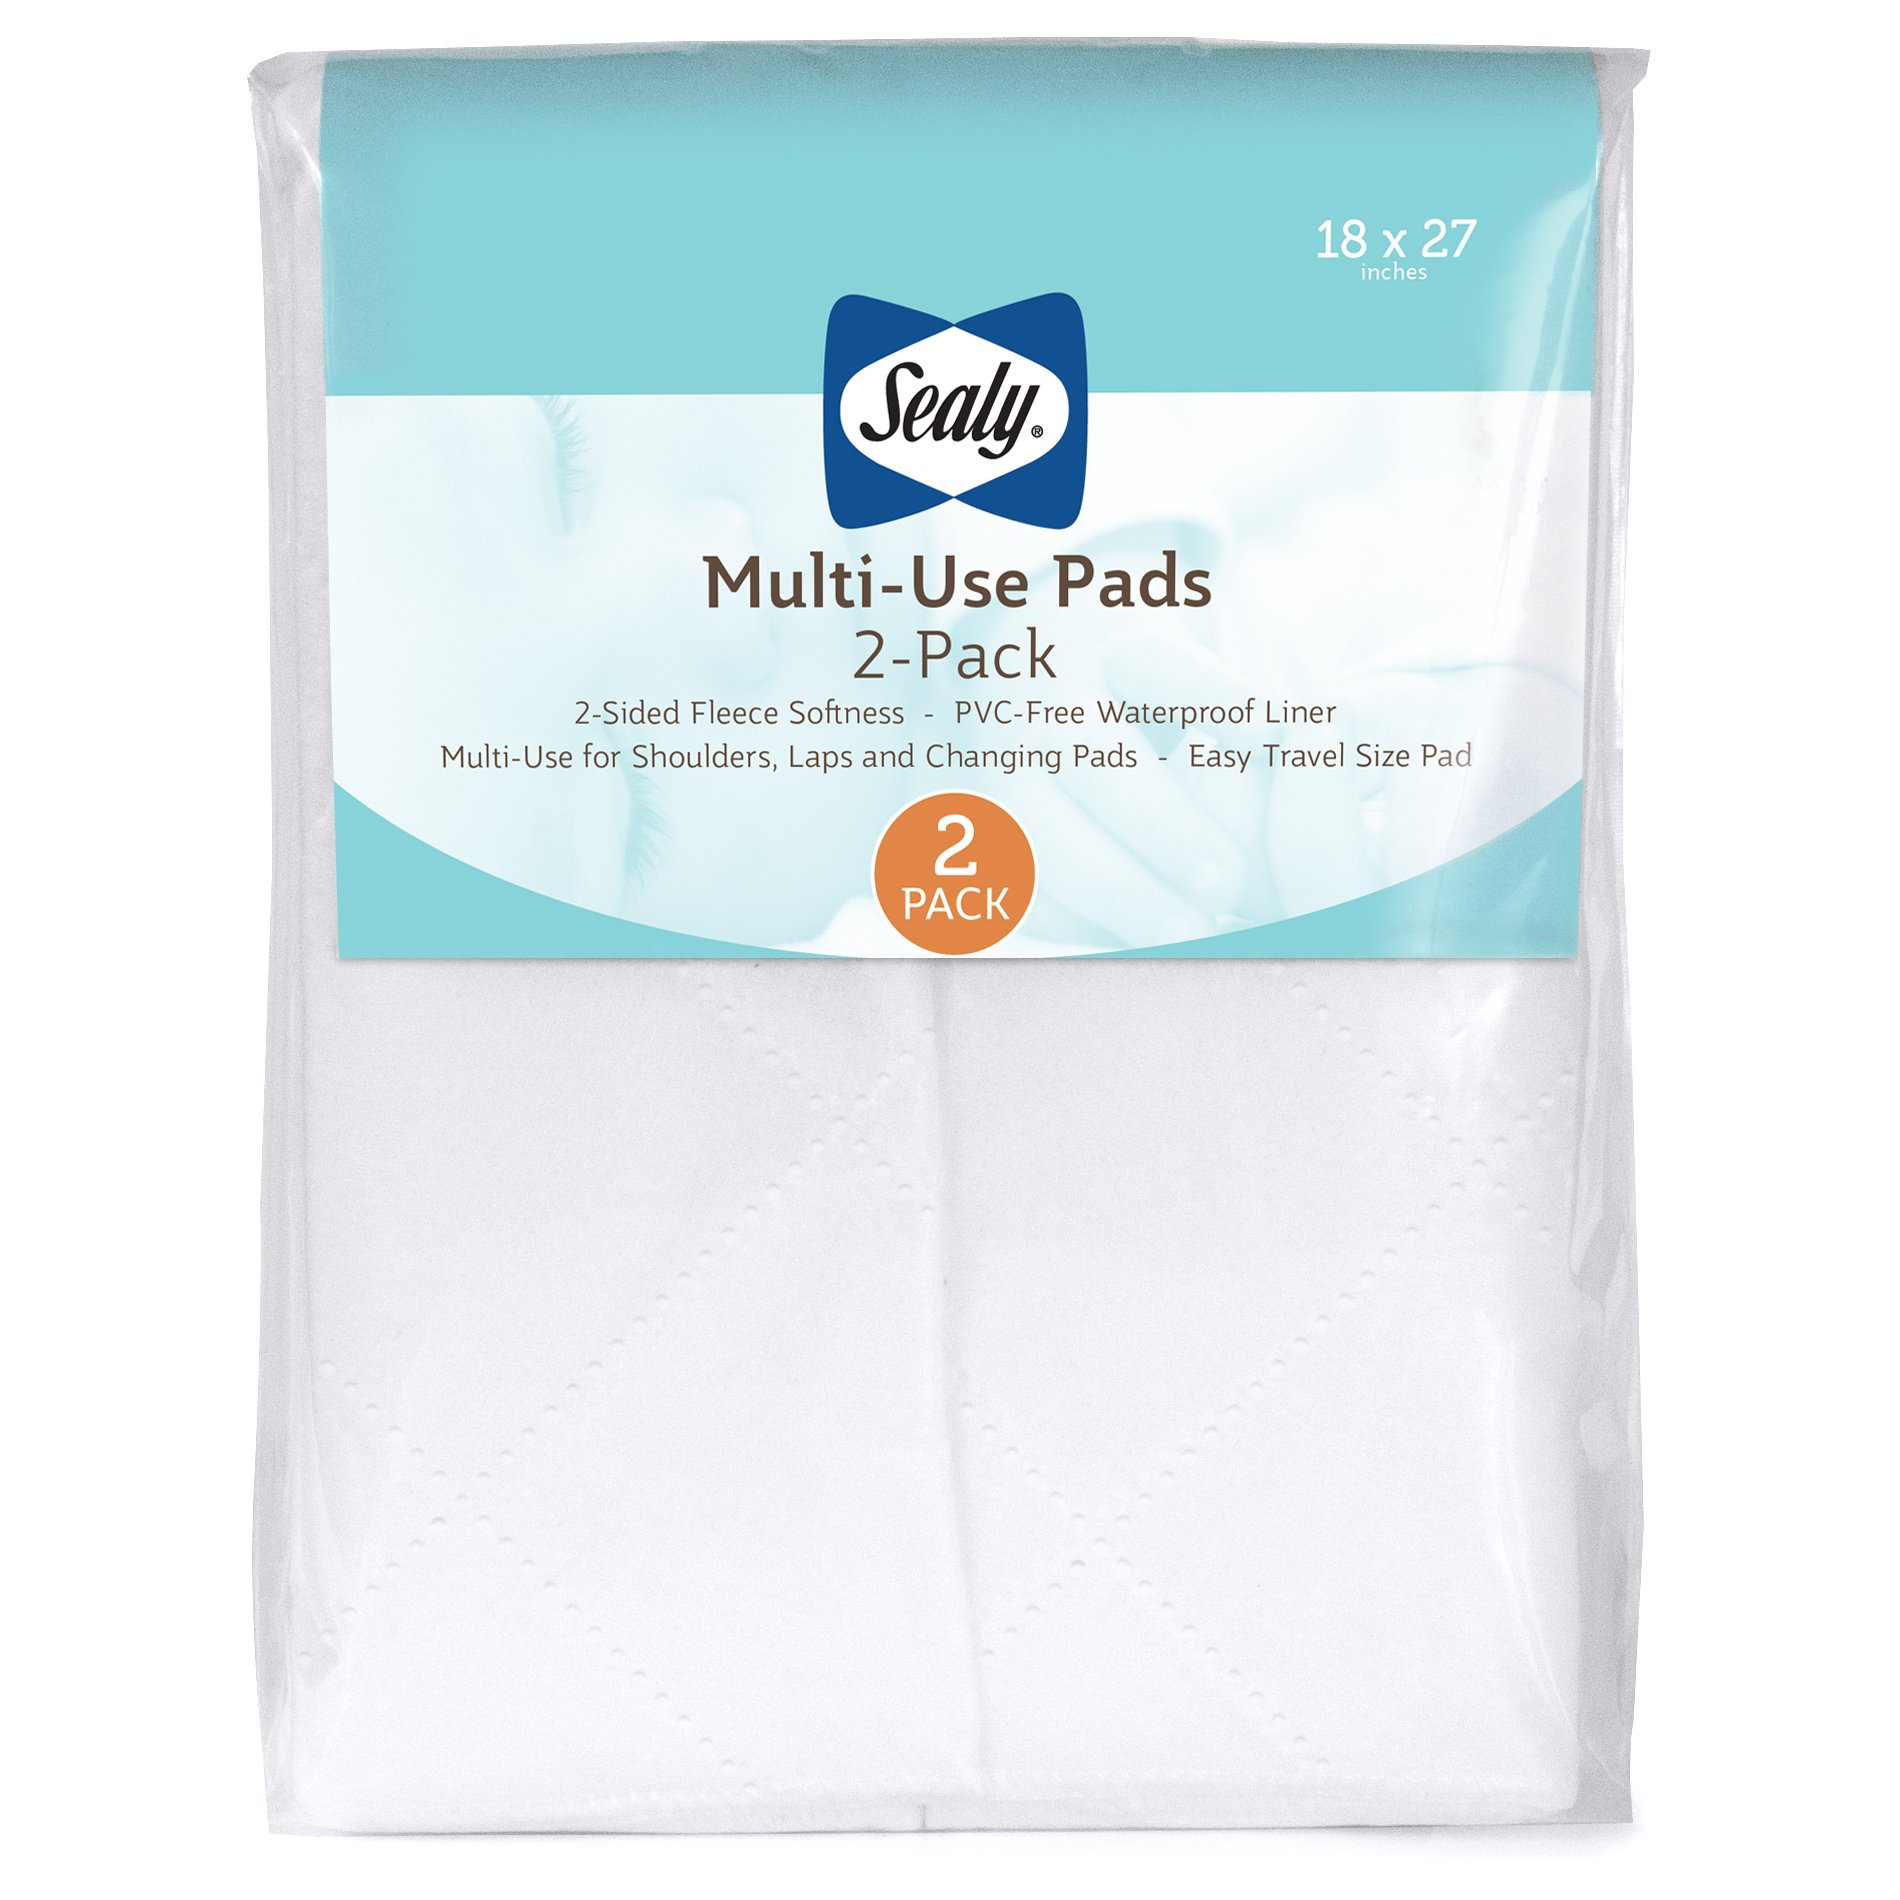 Sealy Multi-Use Waterproof Fleece Liner Pads: 2-Pack, White, 18'' x 27'' by Sealy